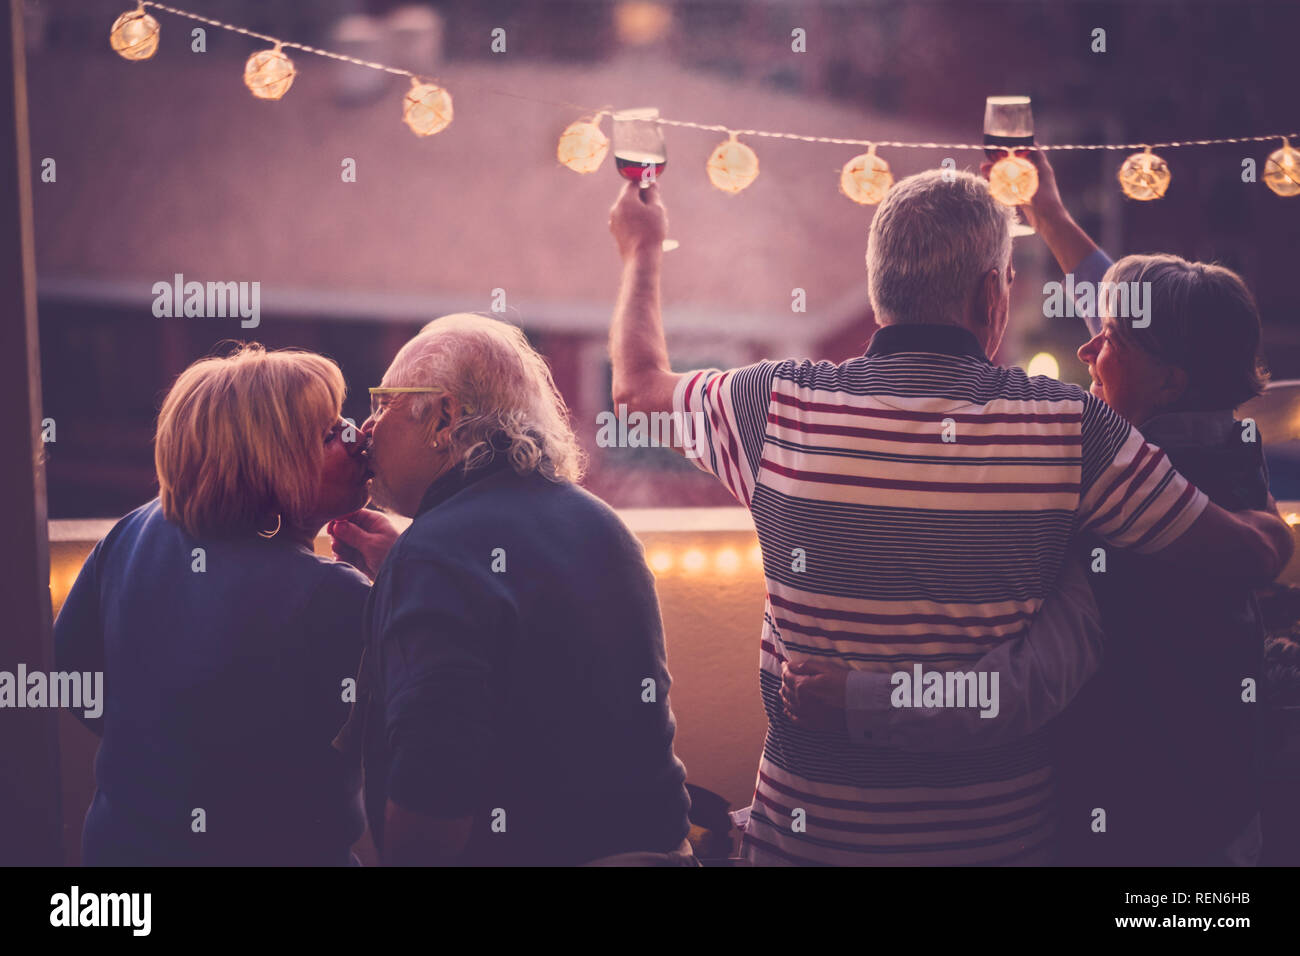 Romantic and love concept with two senior adults couple celebrate together at home in a terrace with city view - toasting with wine and kissing - matu Stock Photo